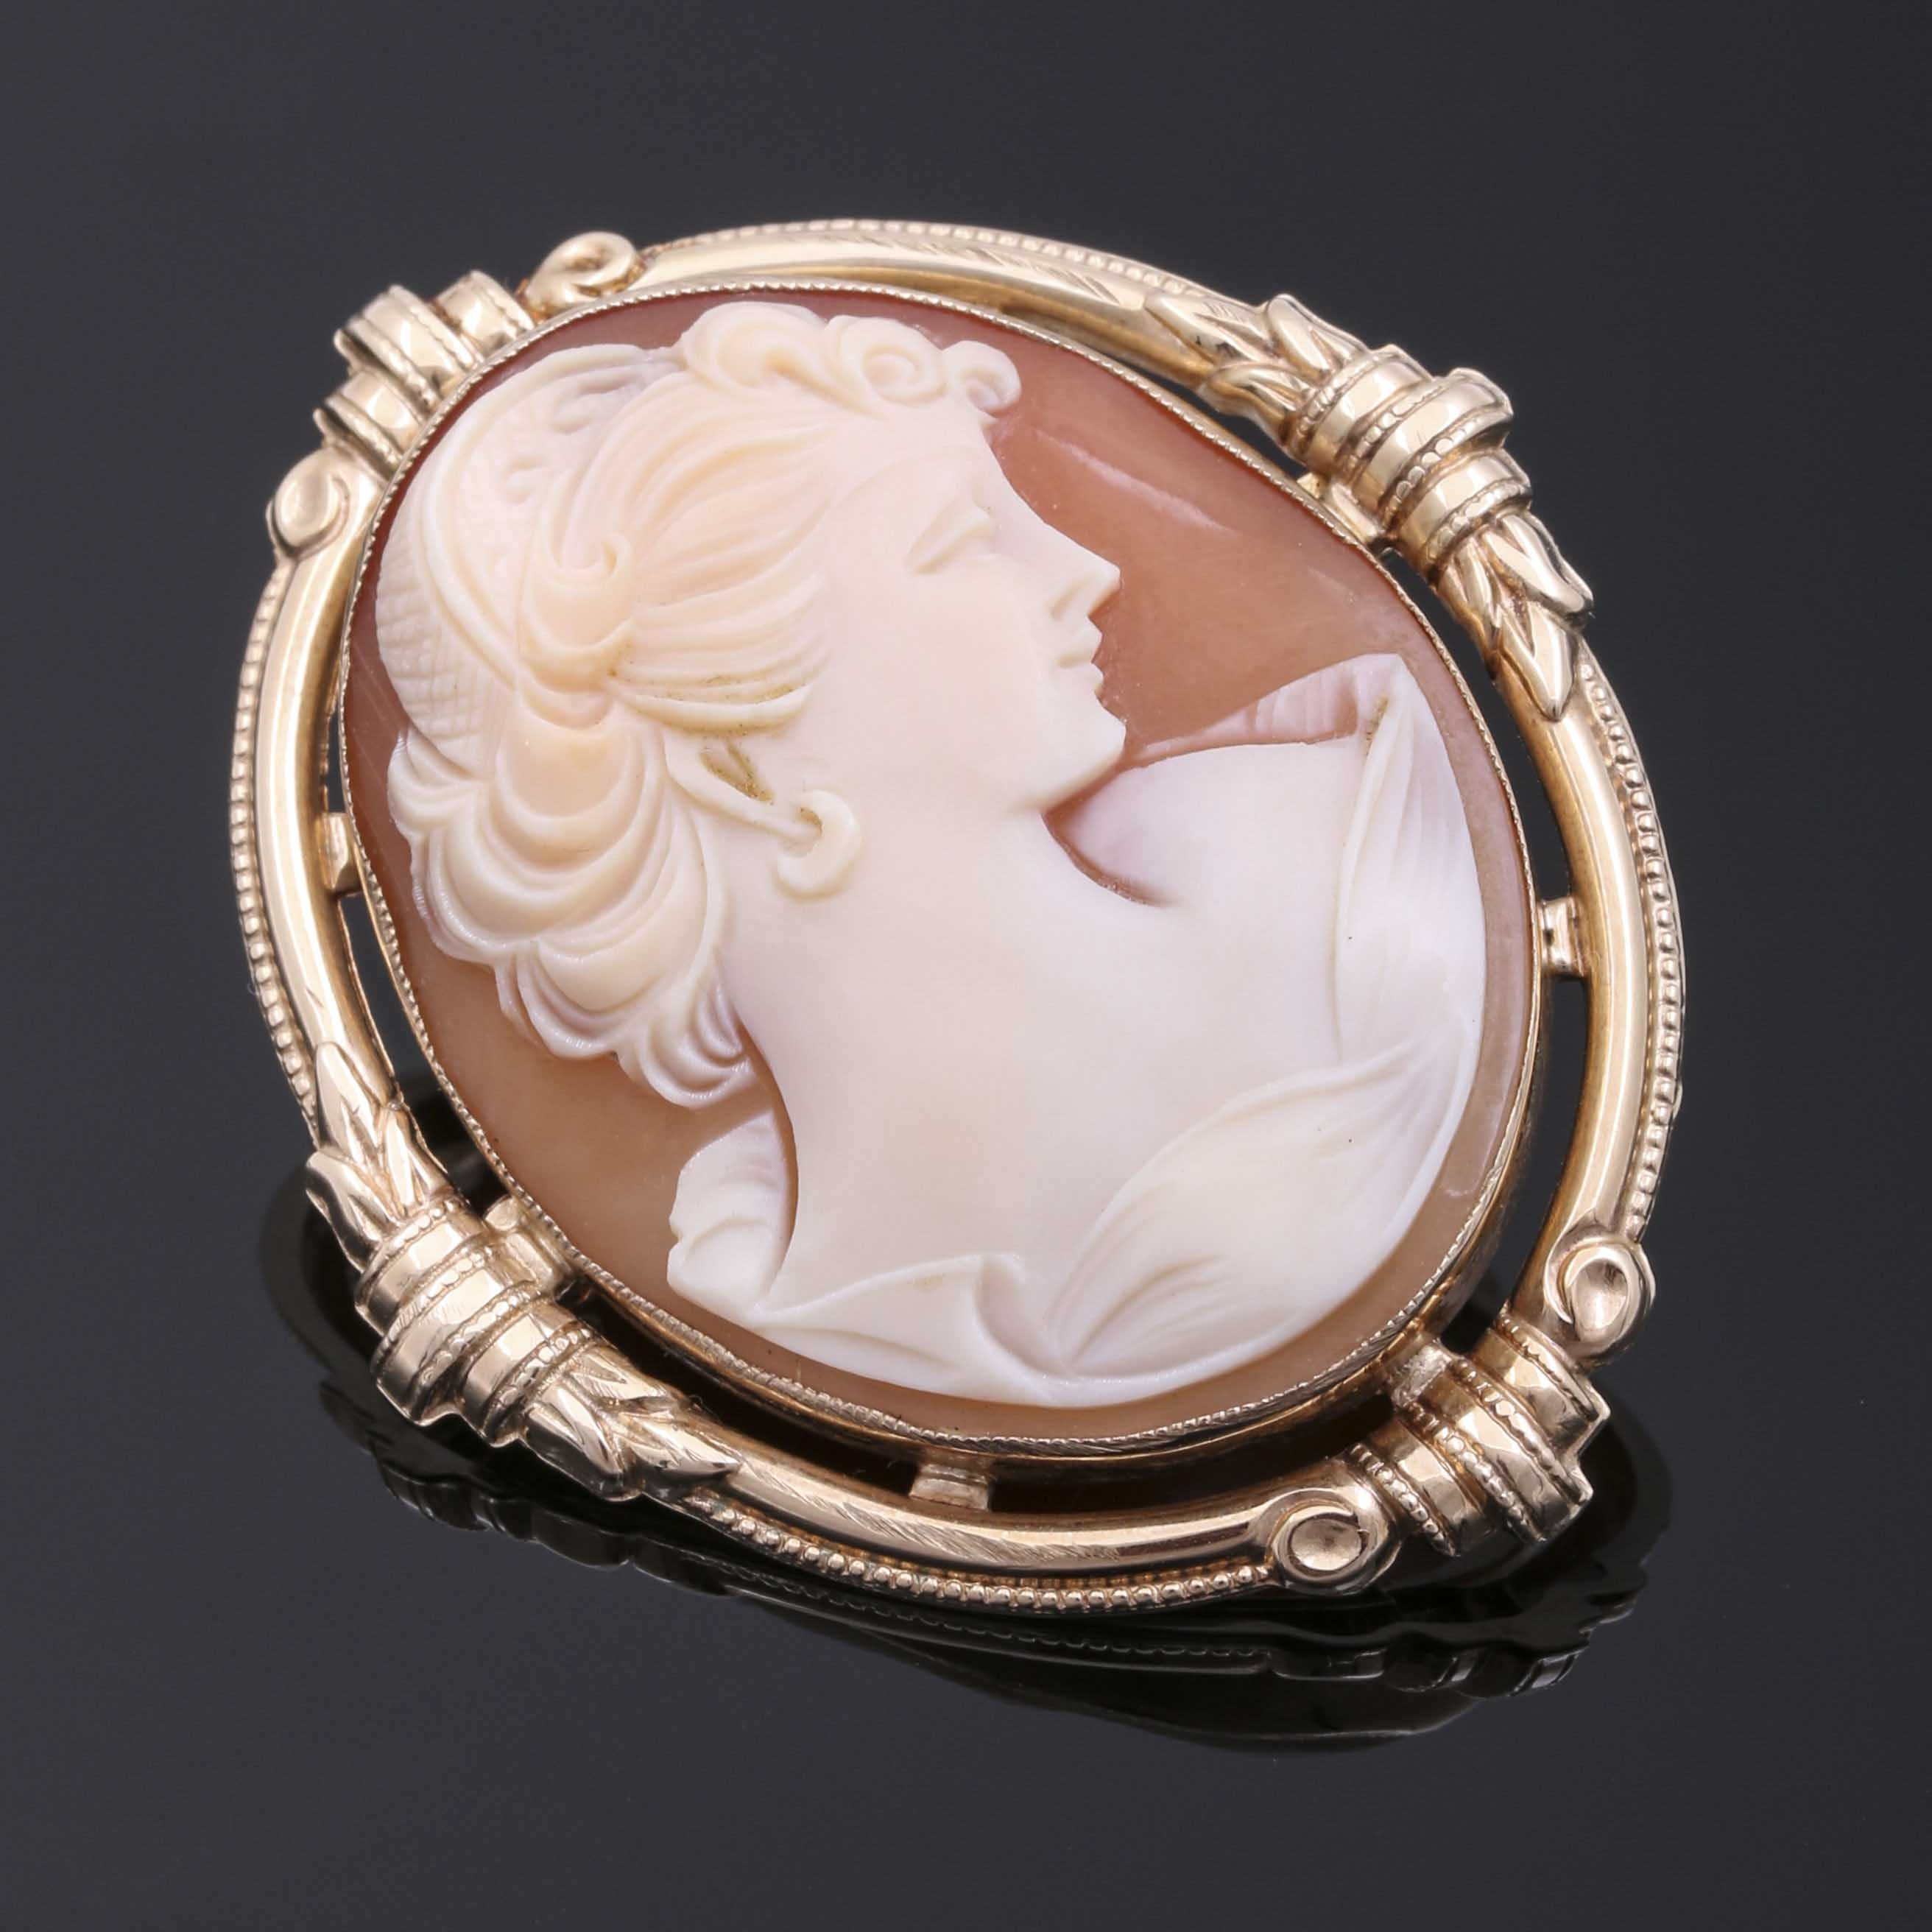 10K Yellow Gold Oval Cameo Convertible Brooch/Pendant